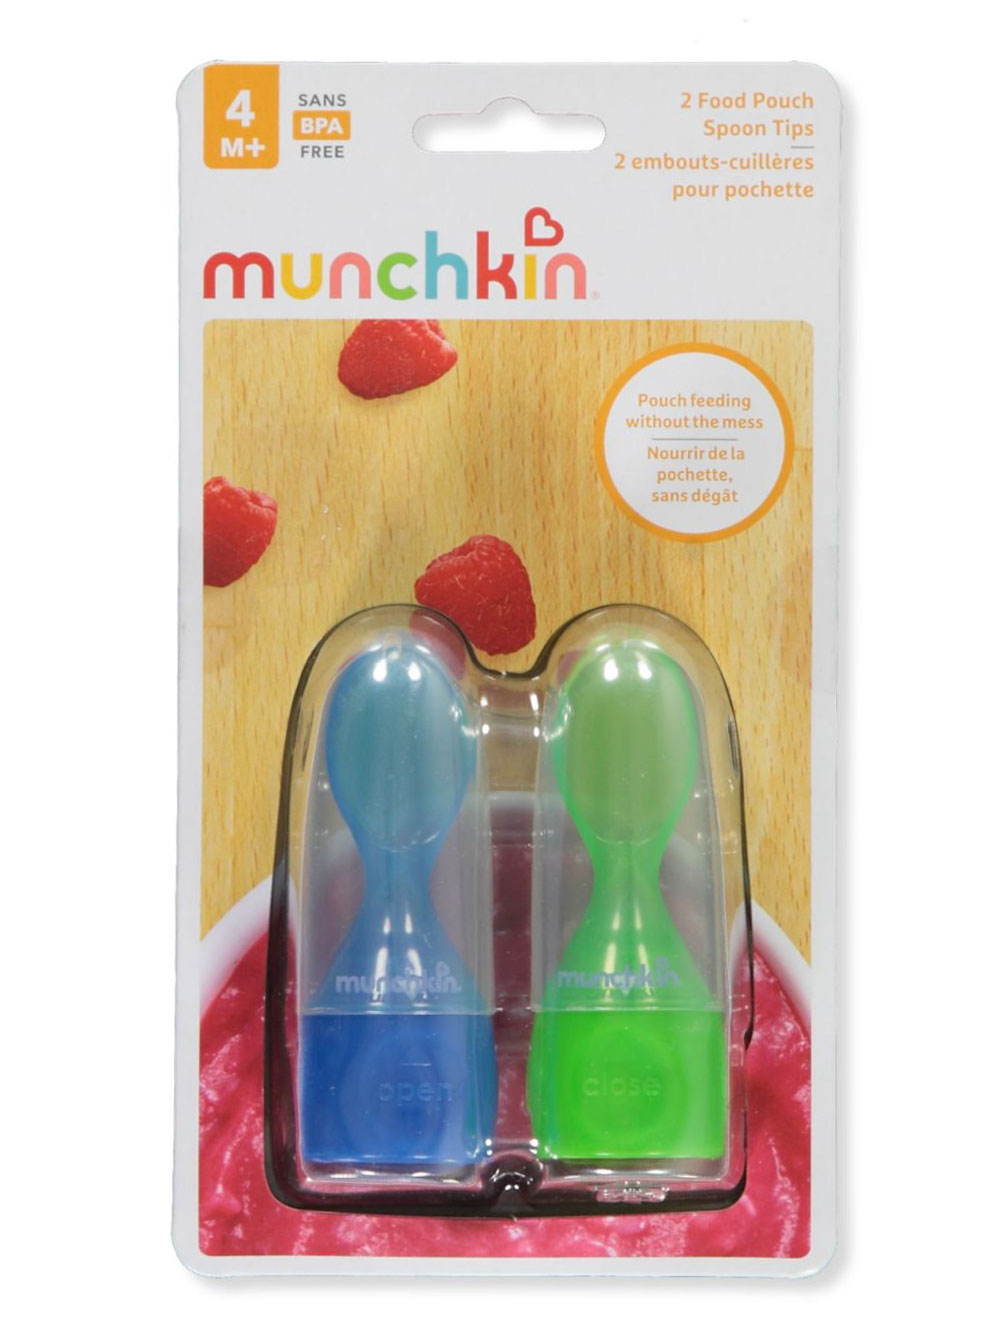 Munchkin Dishes and Utensils